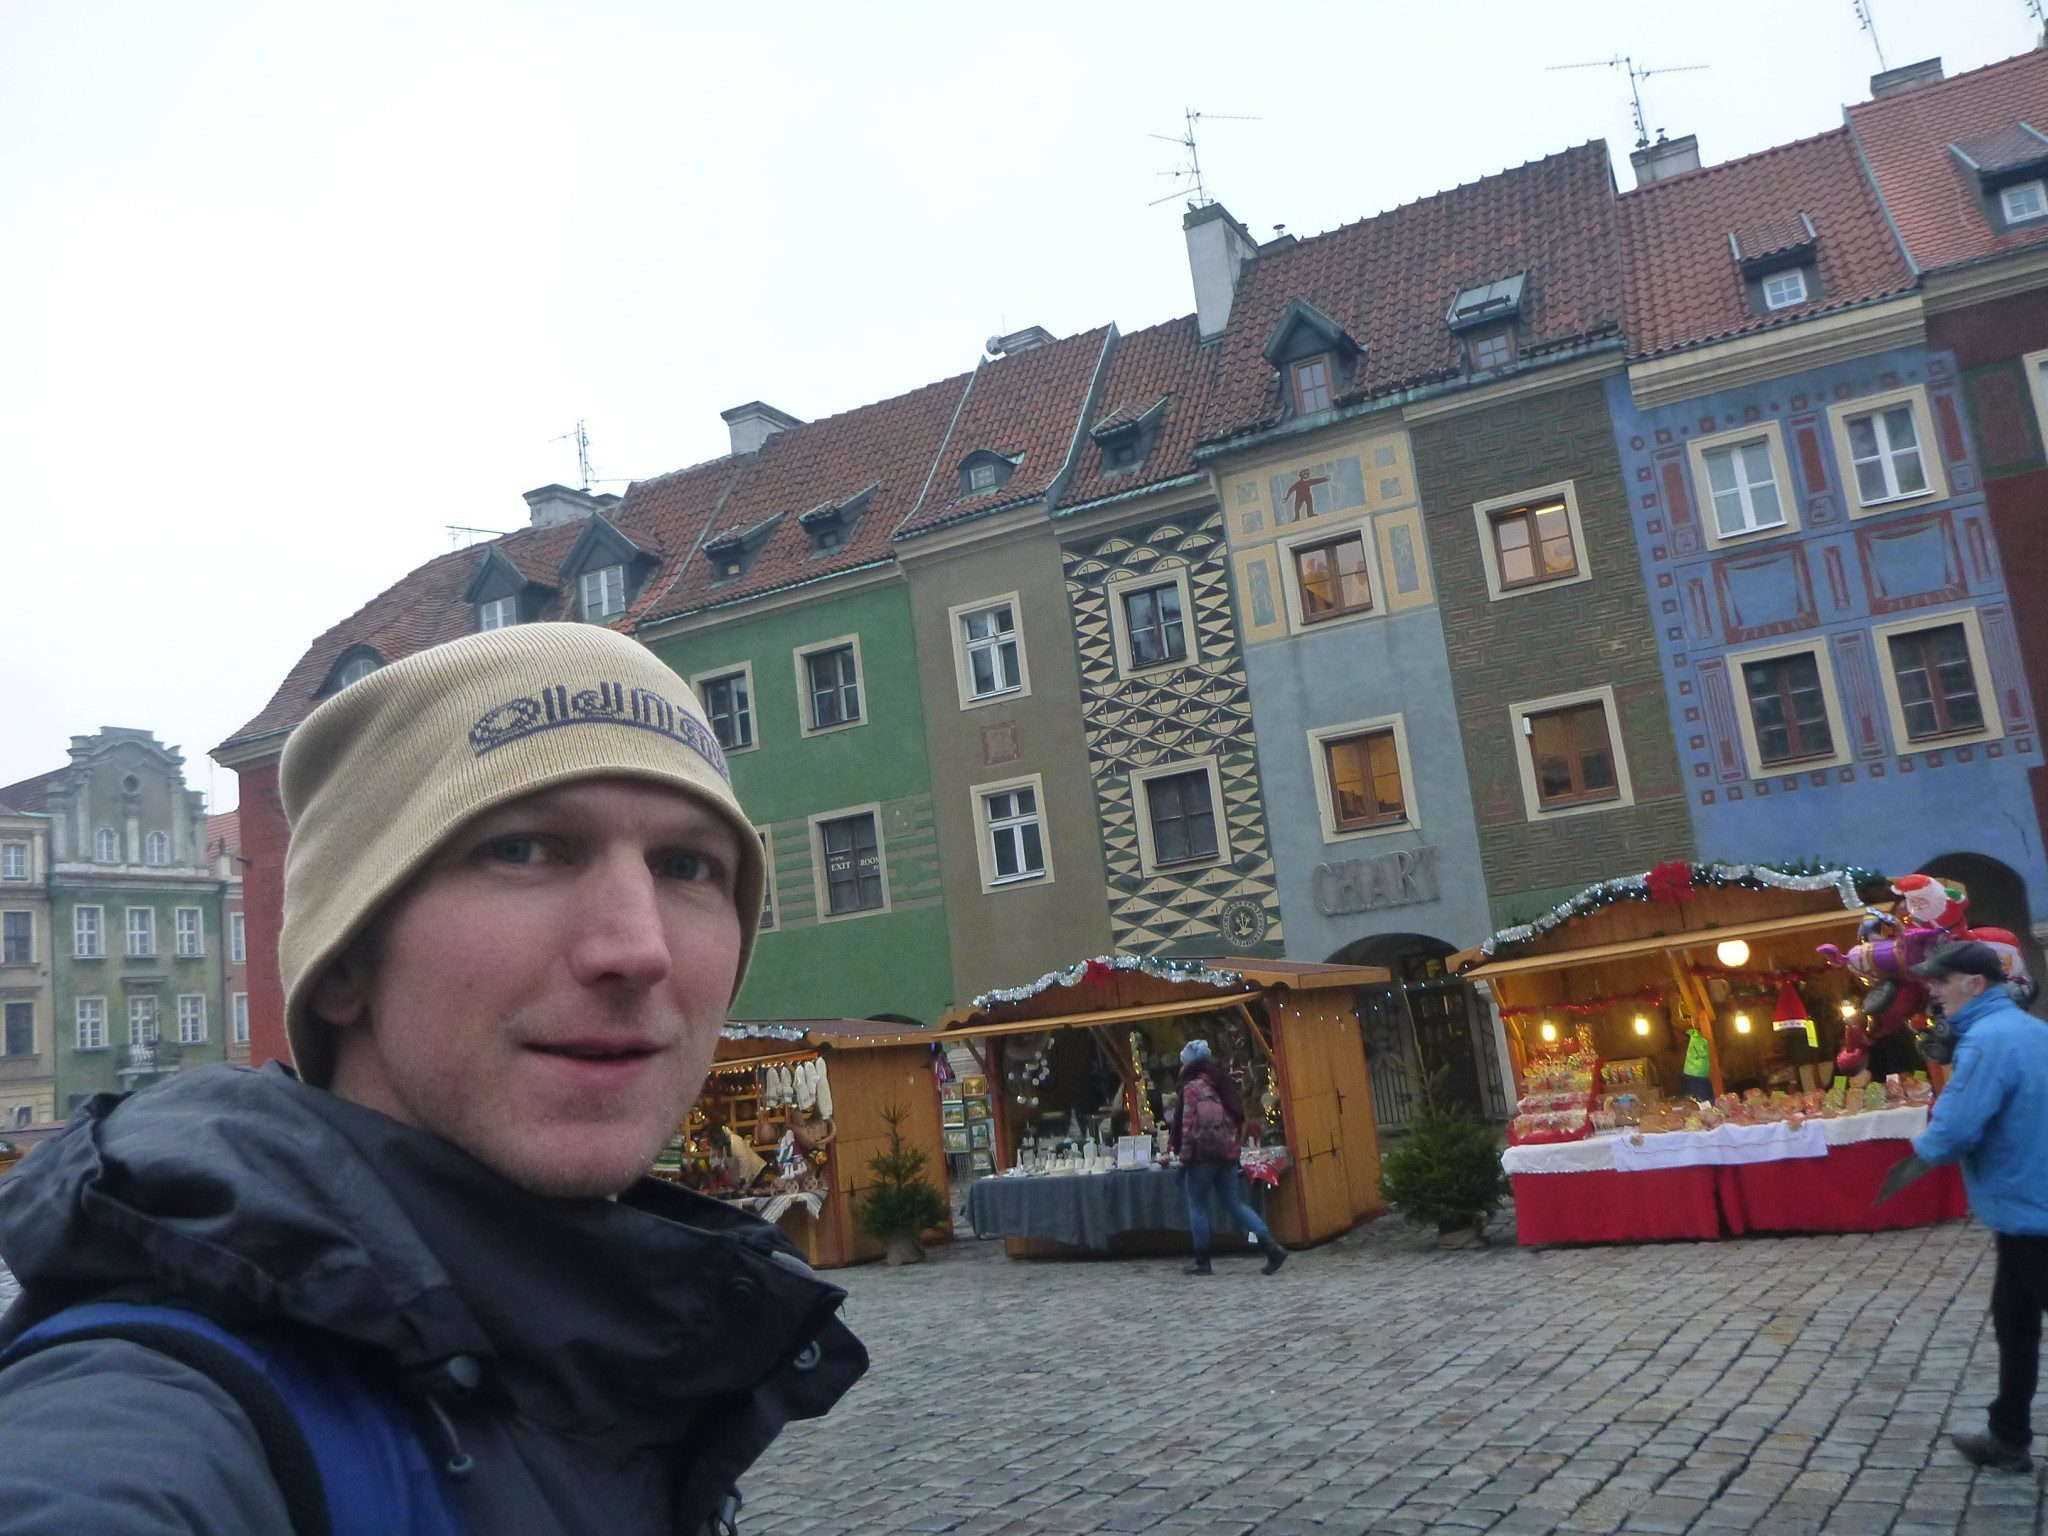 Backpacking in Poland: Top 5 Sights in Poznan